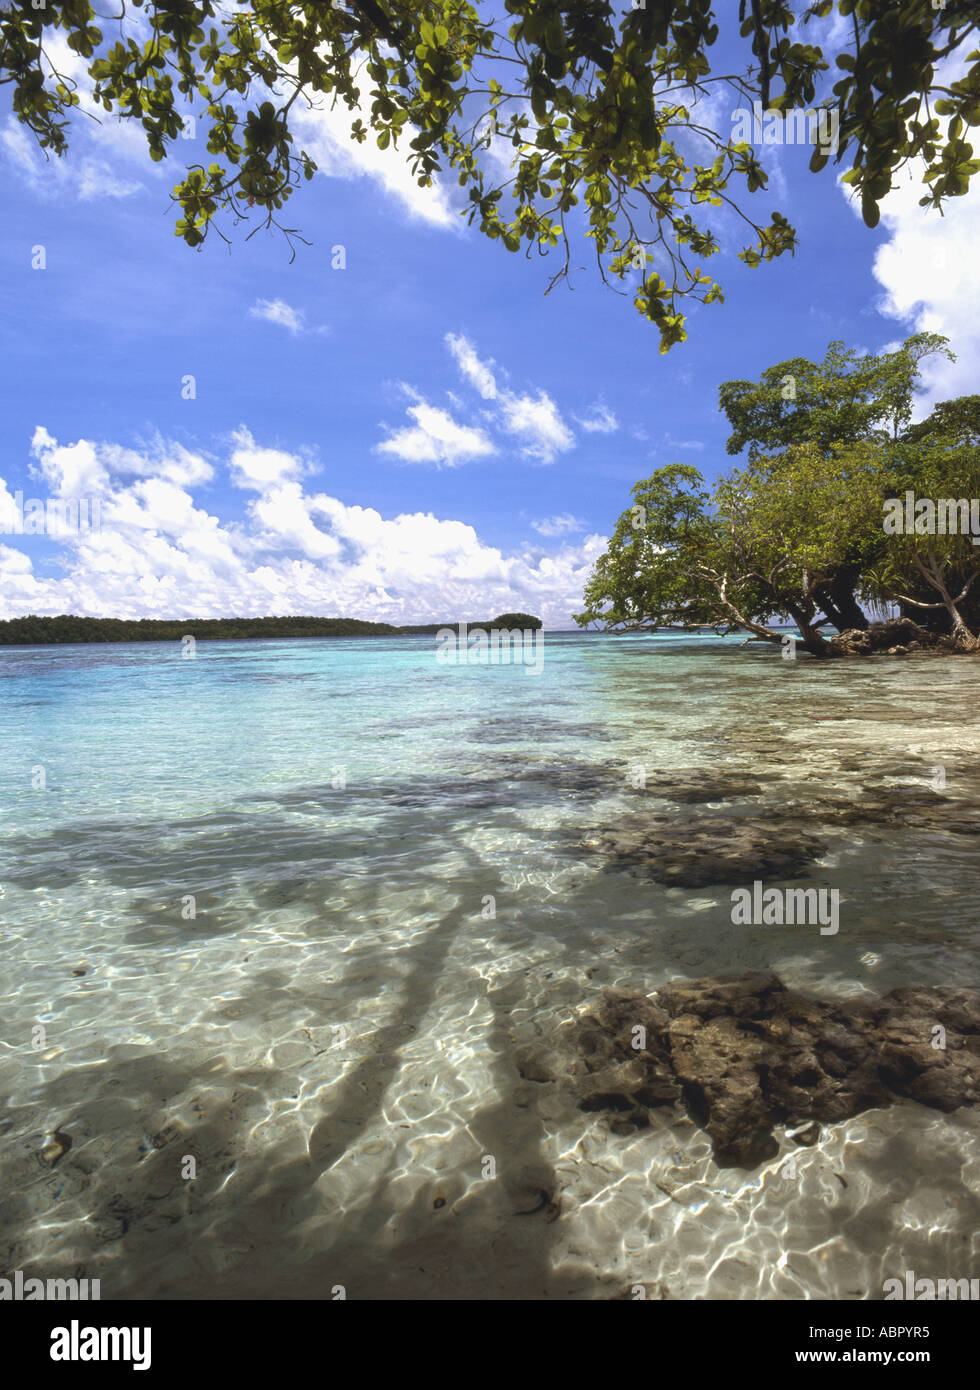 Lagoon, Solomon Islands - Stock Image